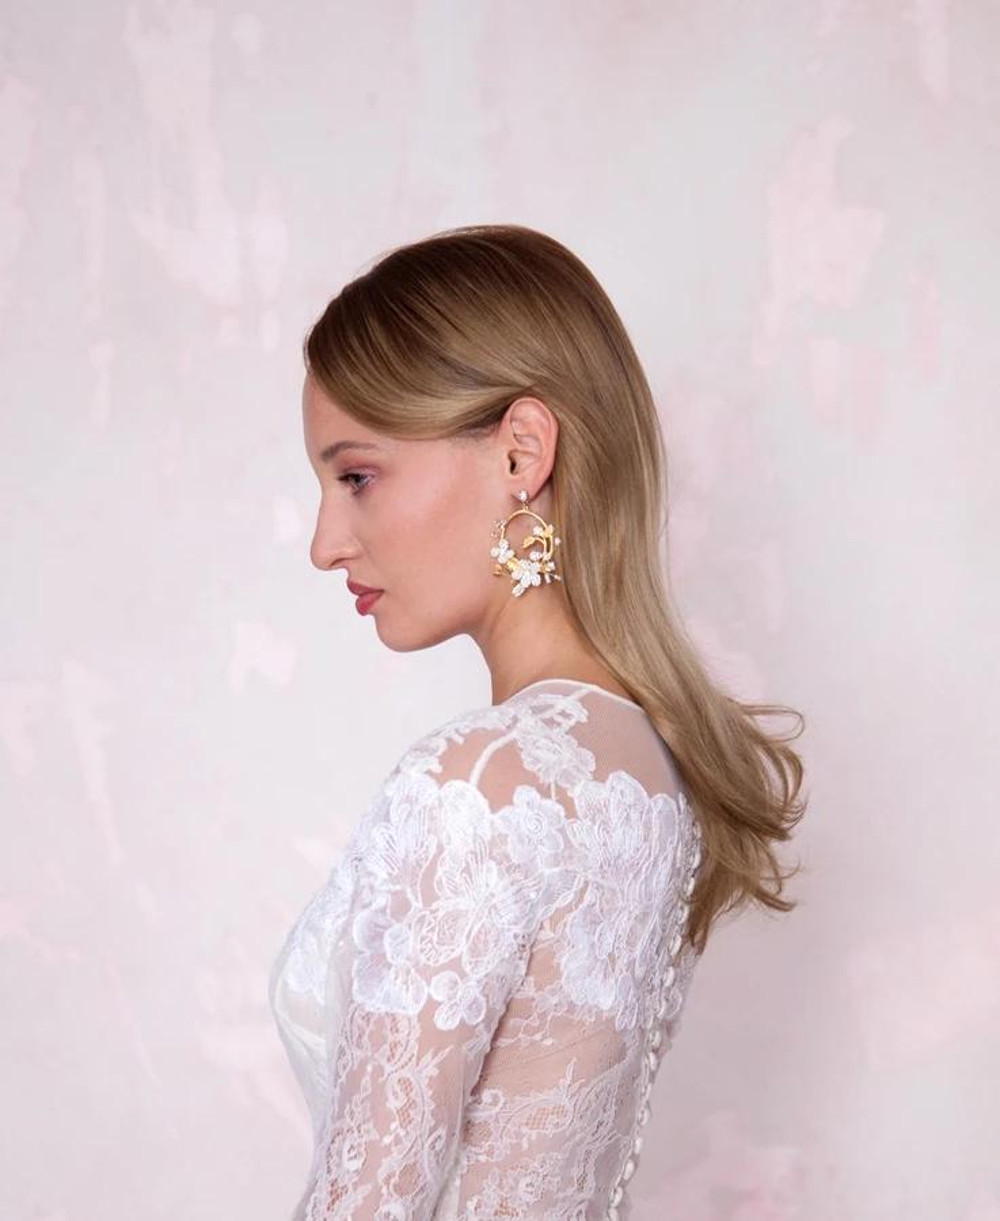 Sara_white florals hoops pendant bridal earrings with freshwater pearls